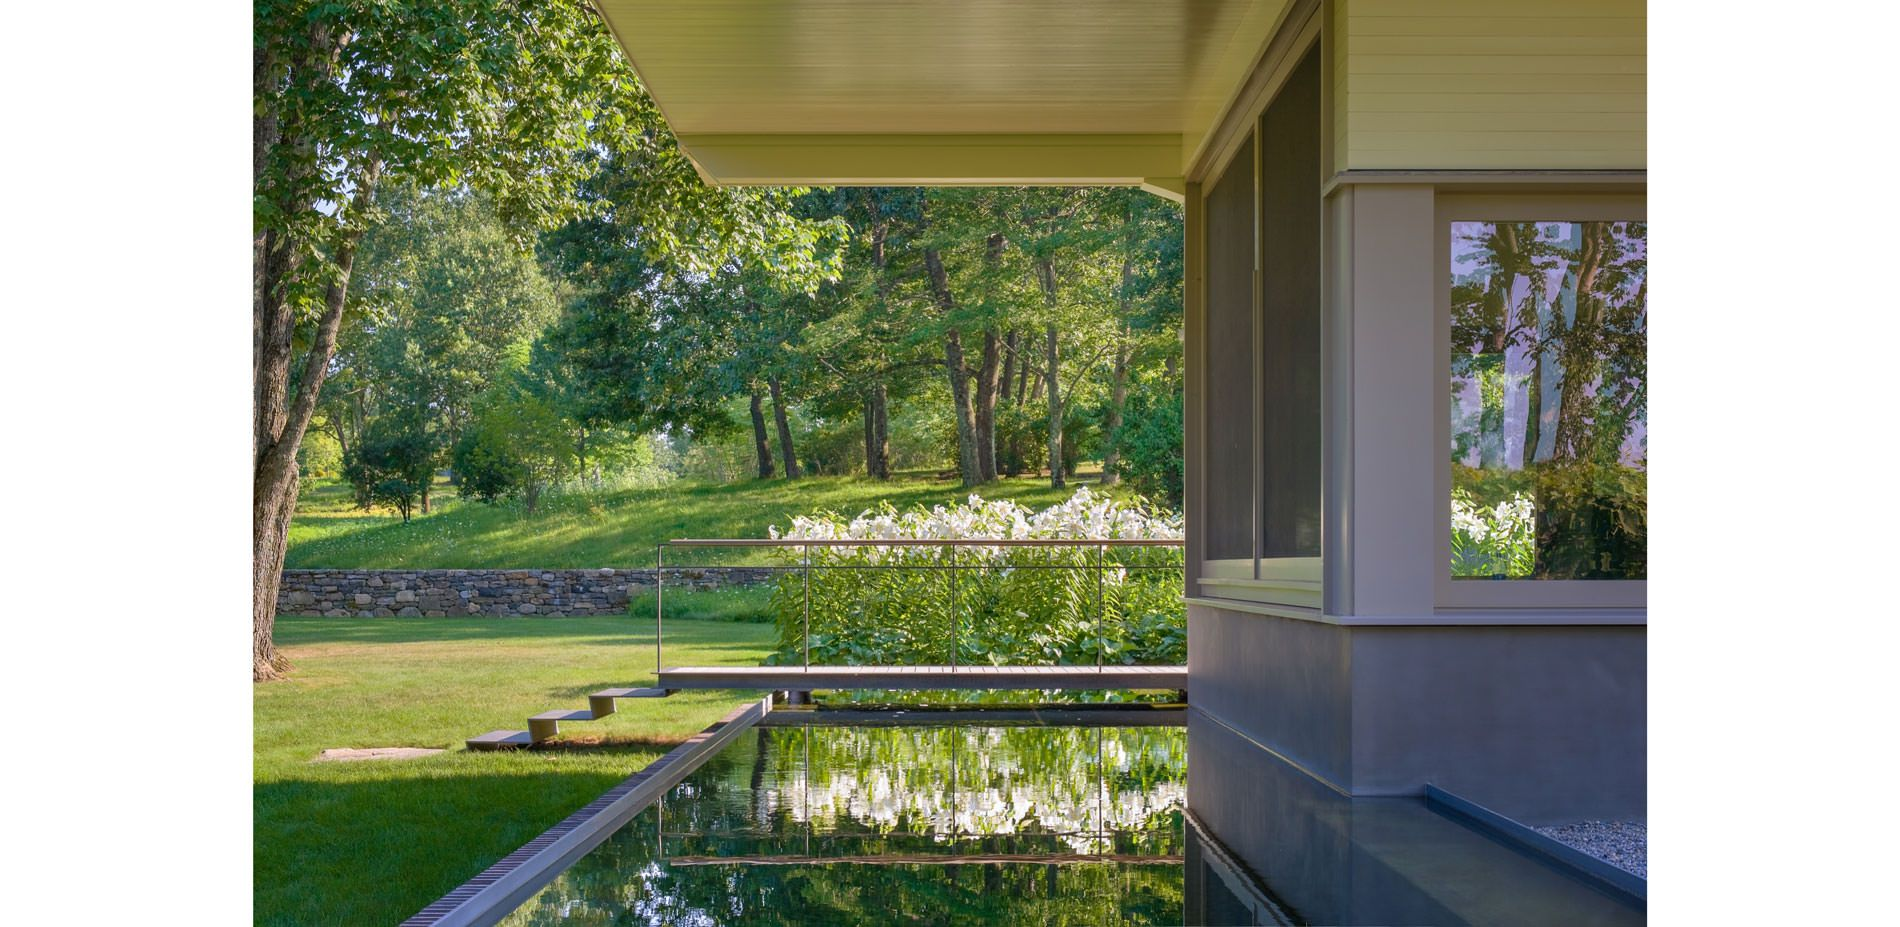 Proving Grounds A 20 Year Education In American Horticulture 2017 Asla Professional Awards Garden Pavilion Landscape Design Horticulture